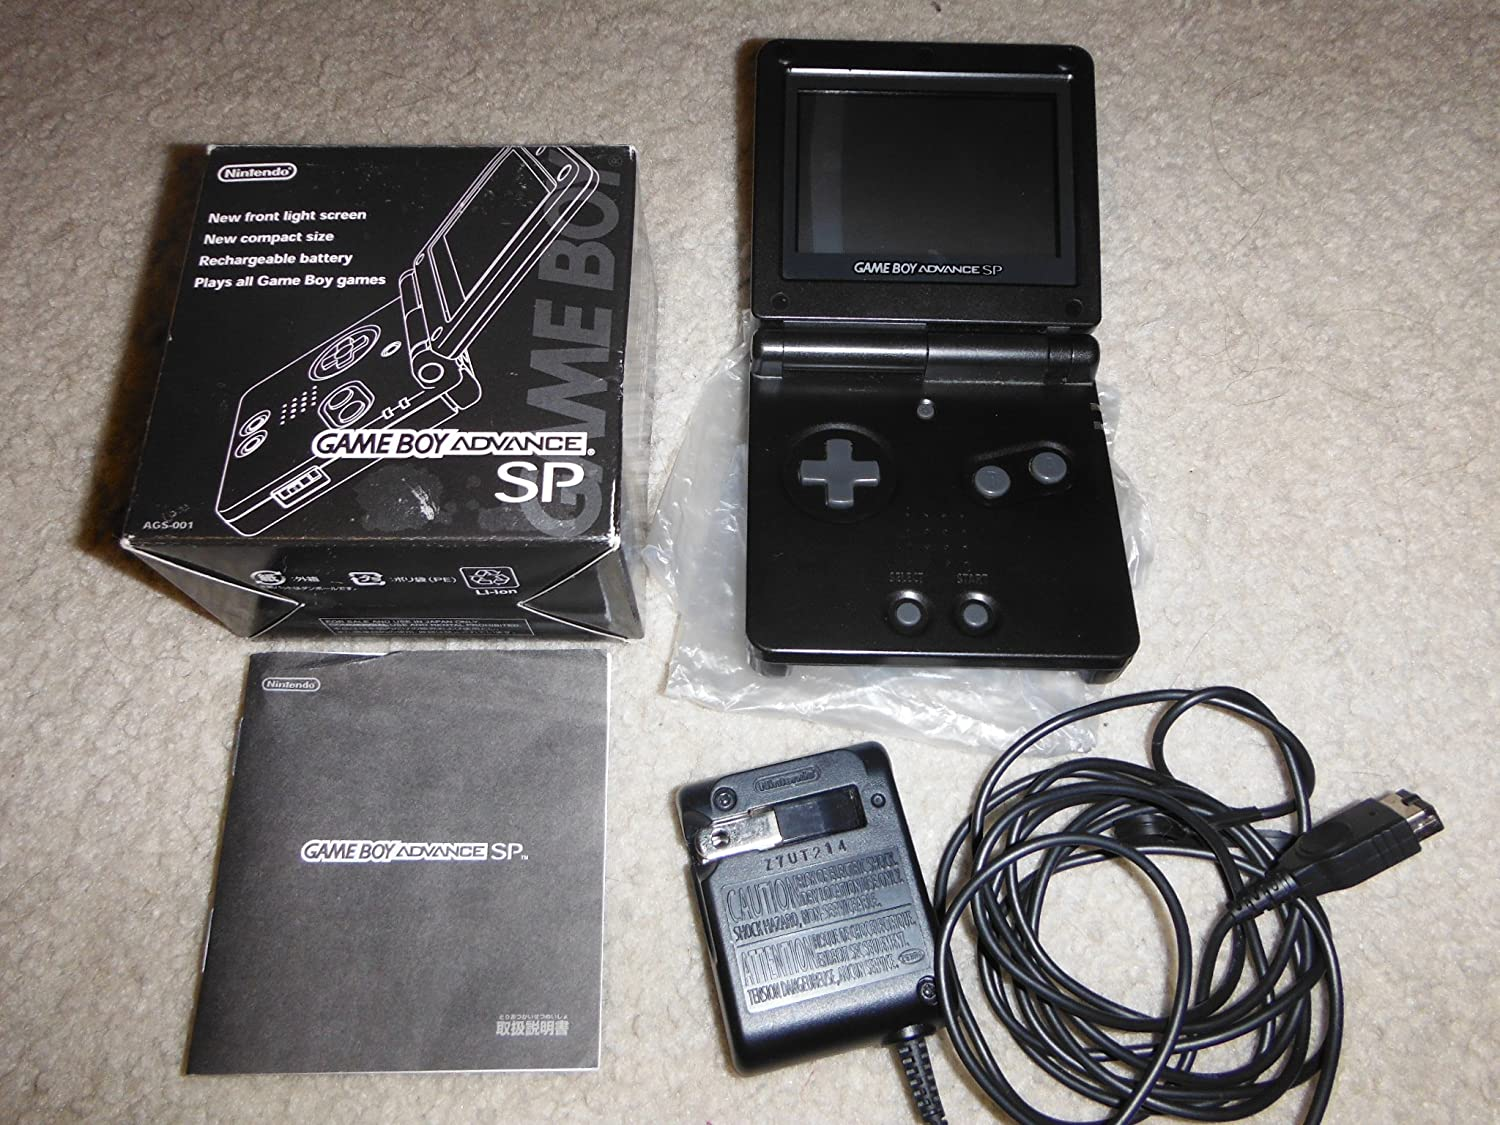 Nintendo Gameboy Advance Sp Onyx Black AGS-001